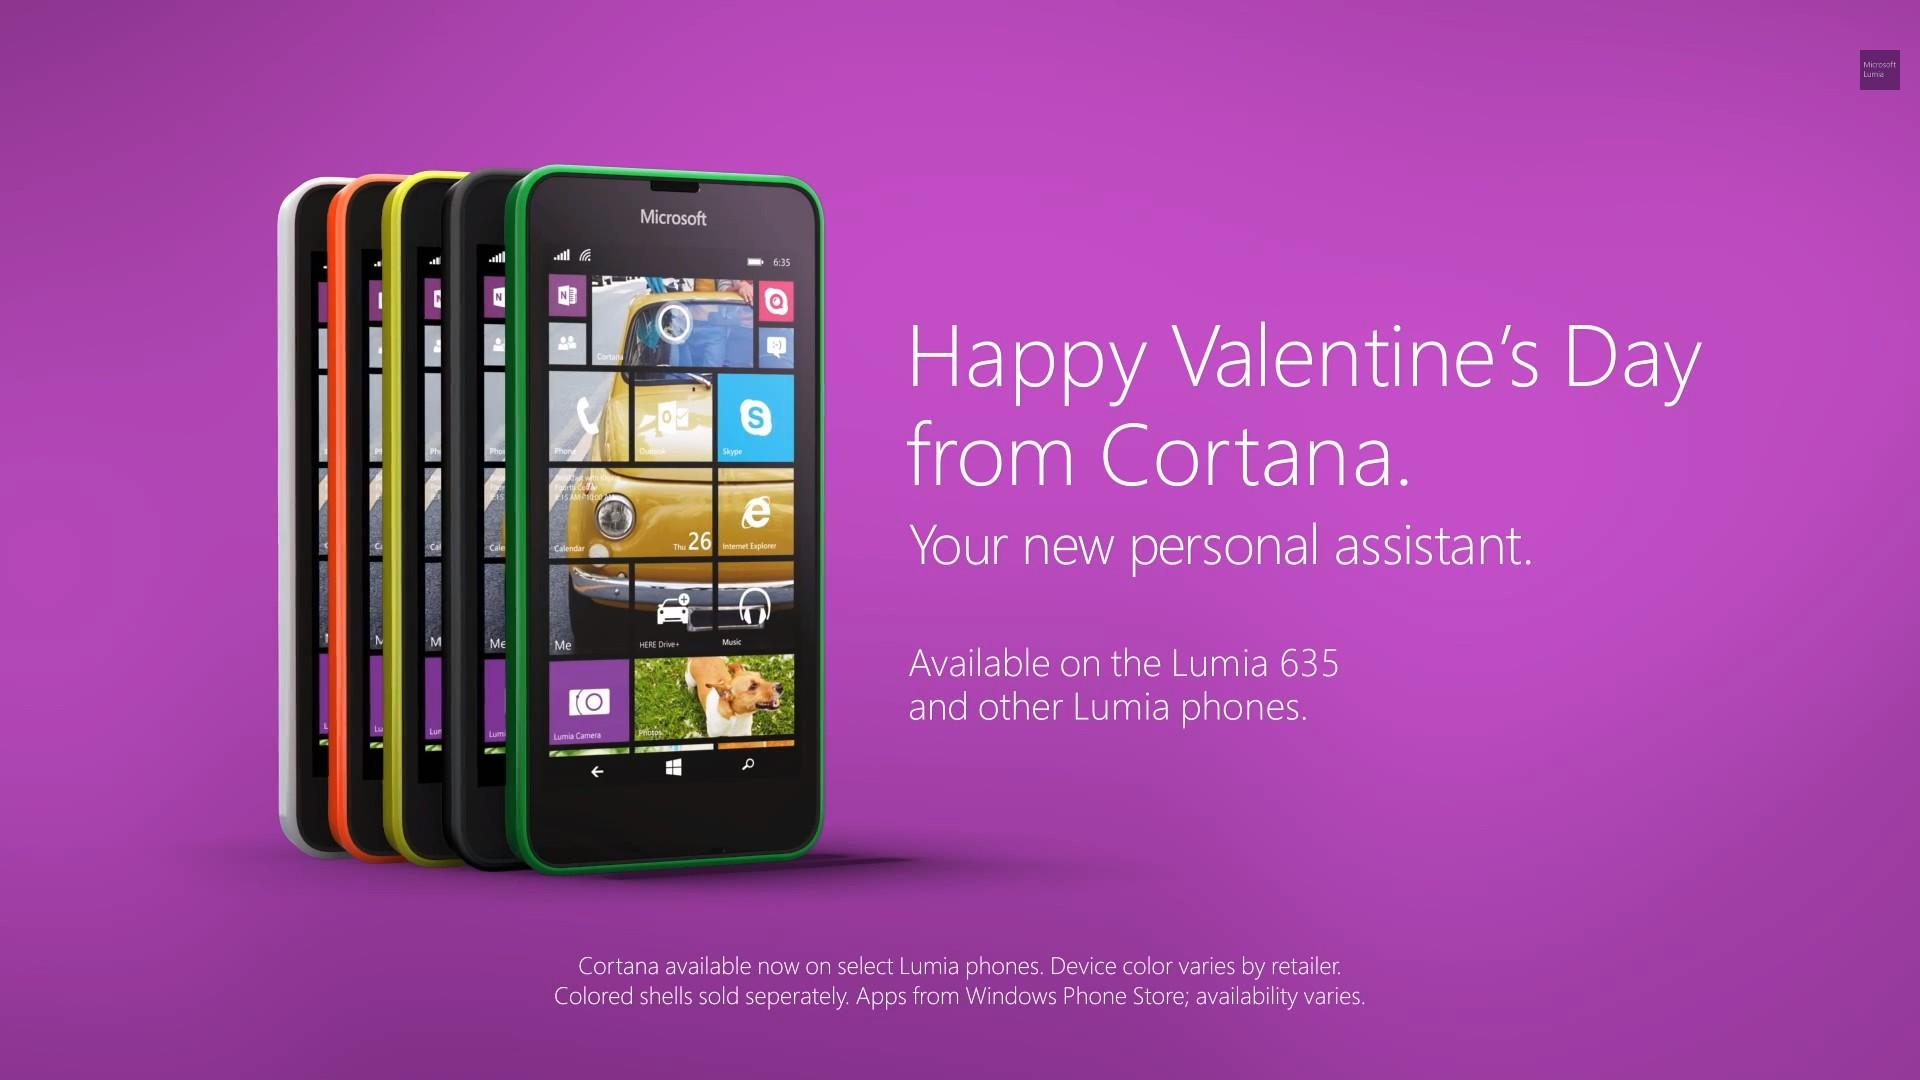 Microsoft S Cortana Goes After Siri In Valentine S Day Video Ads